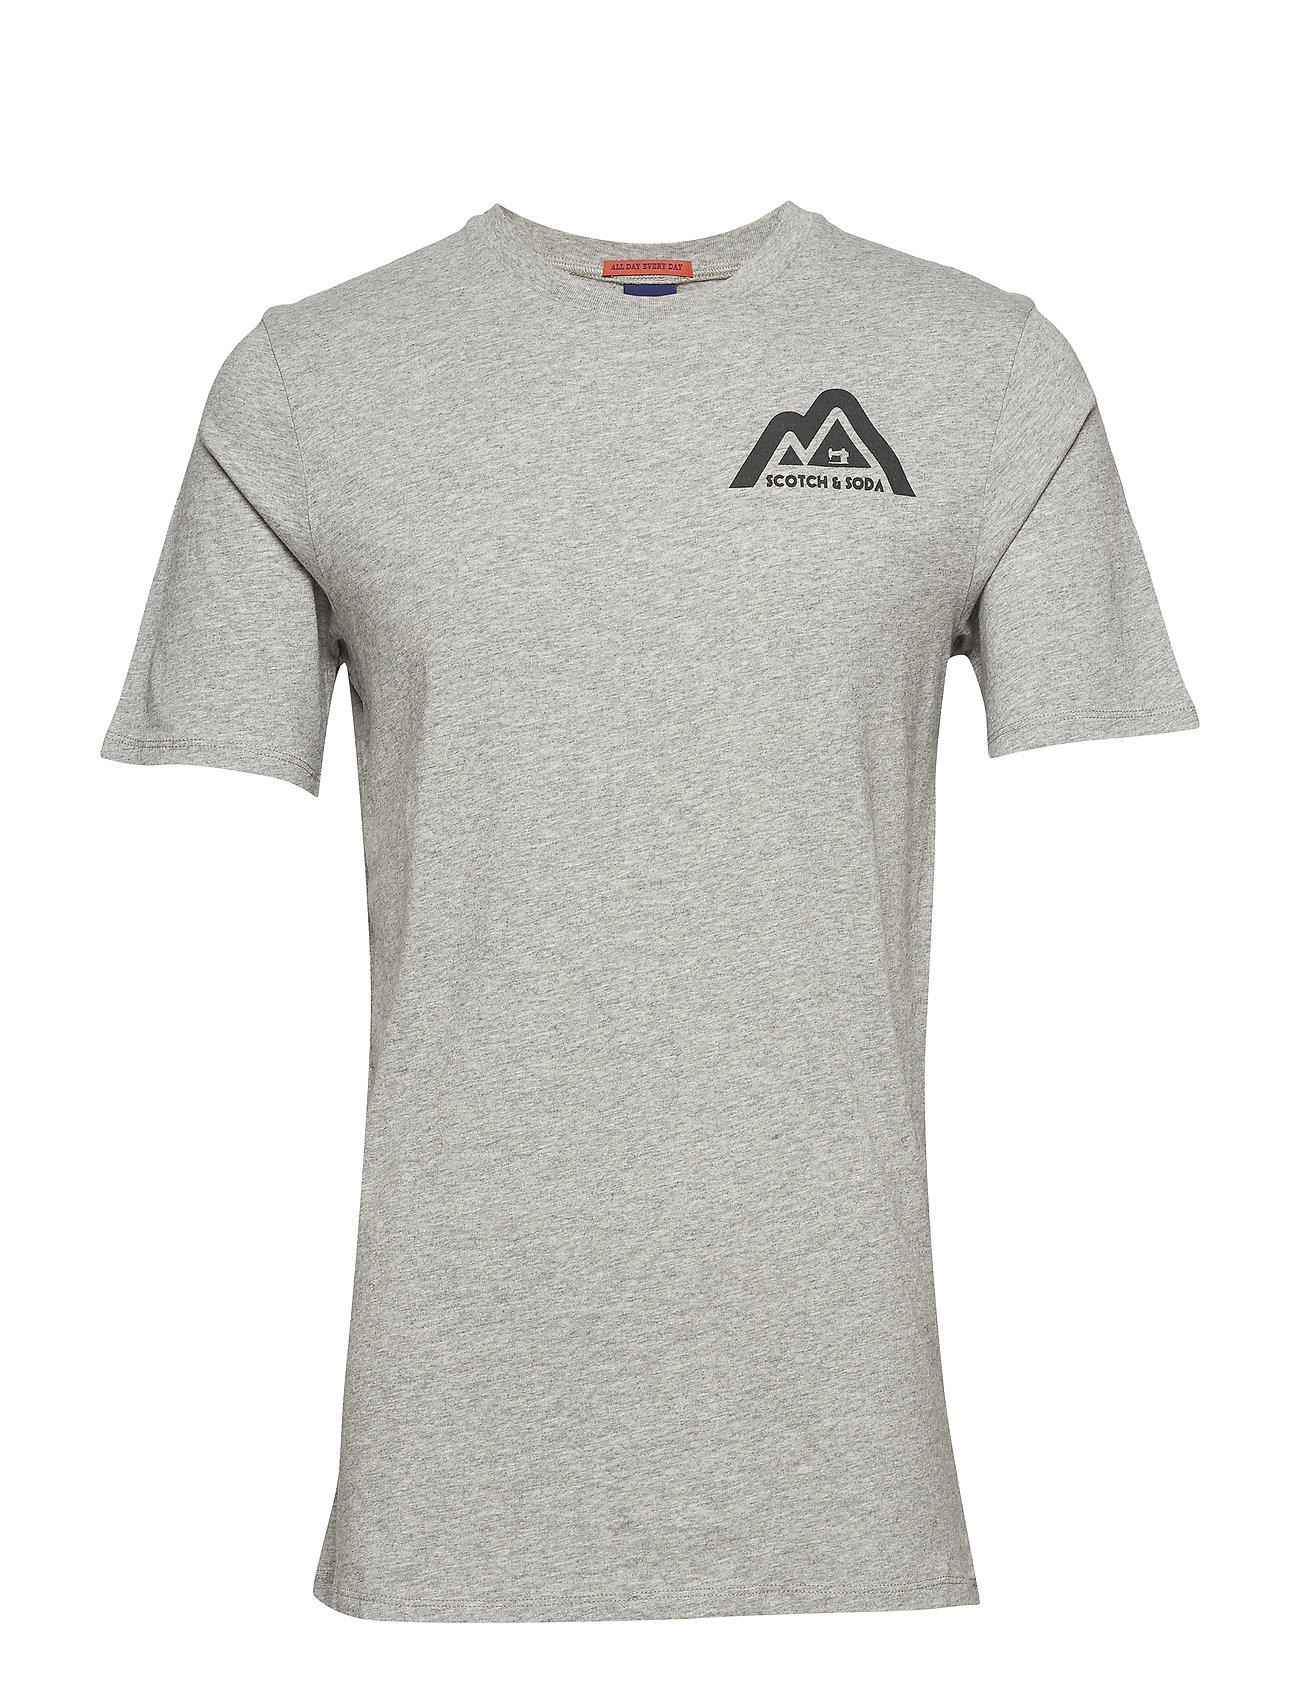 Scotch & Soda Clean Shortsleeve Tee With Small Logo Chest Print 460526843